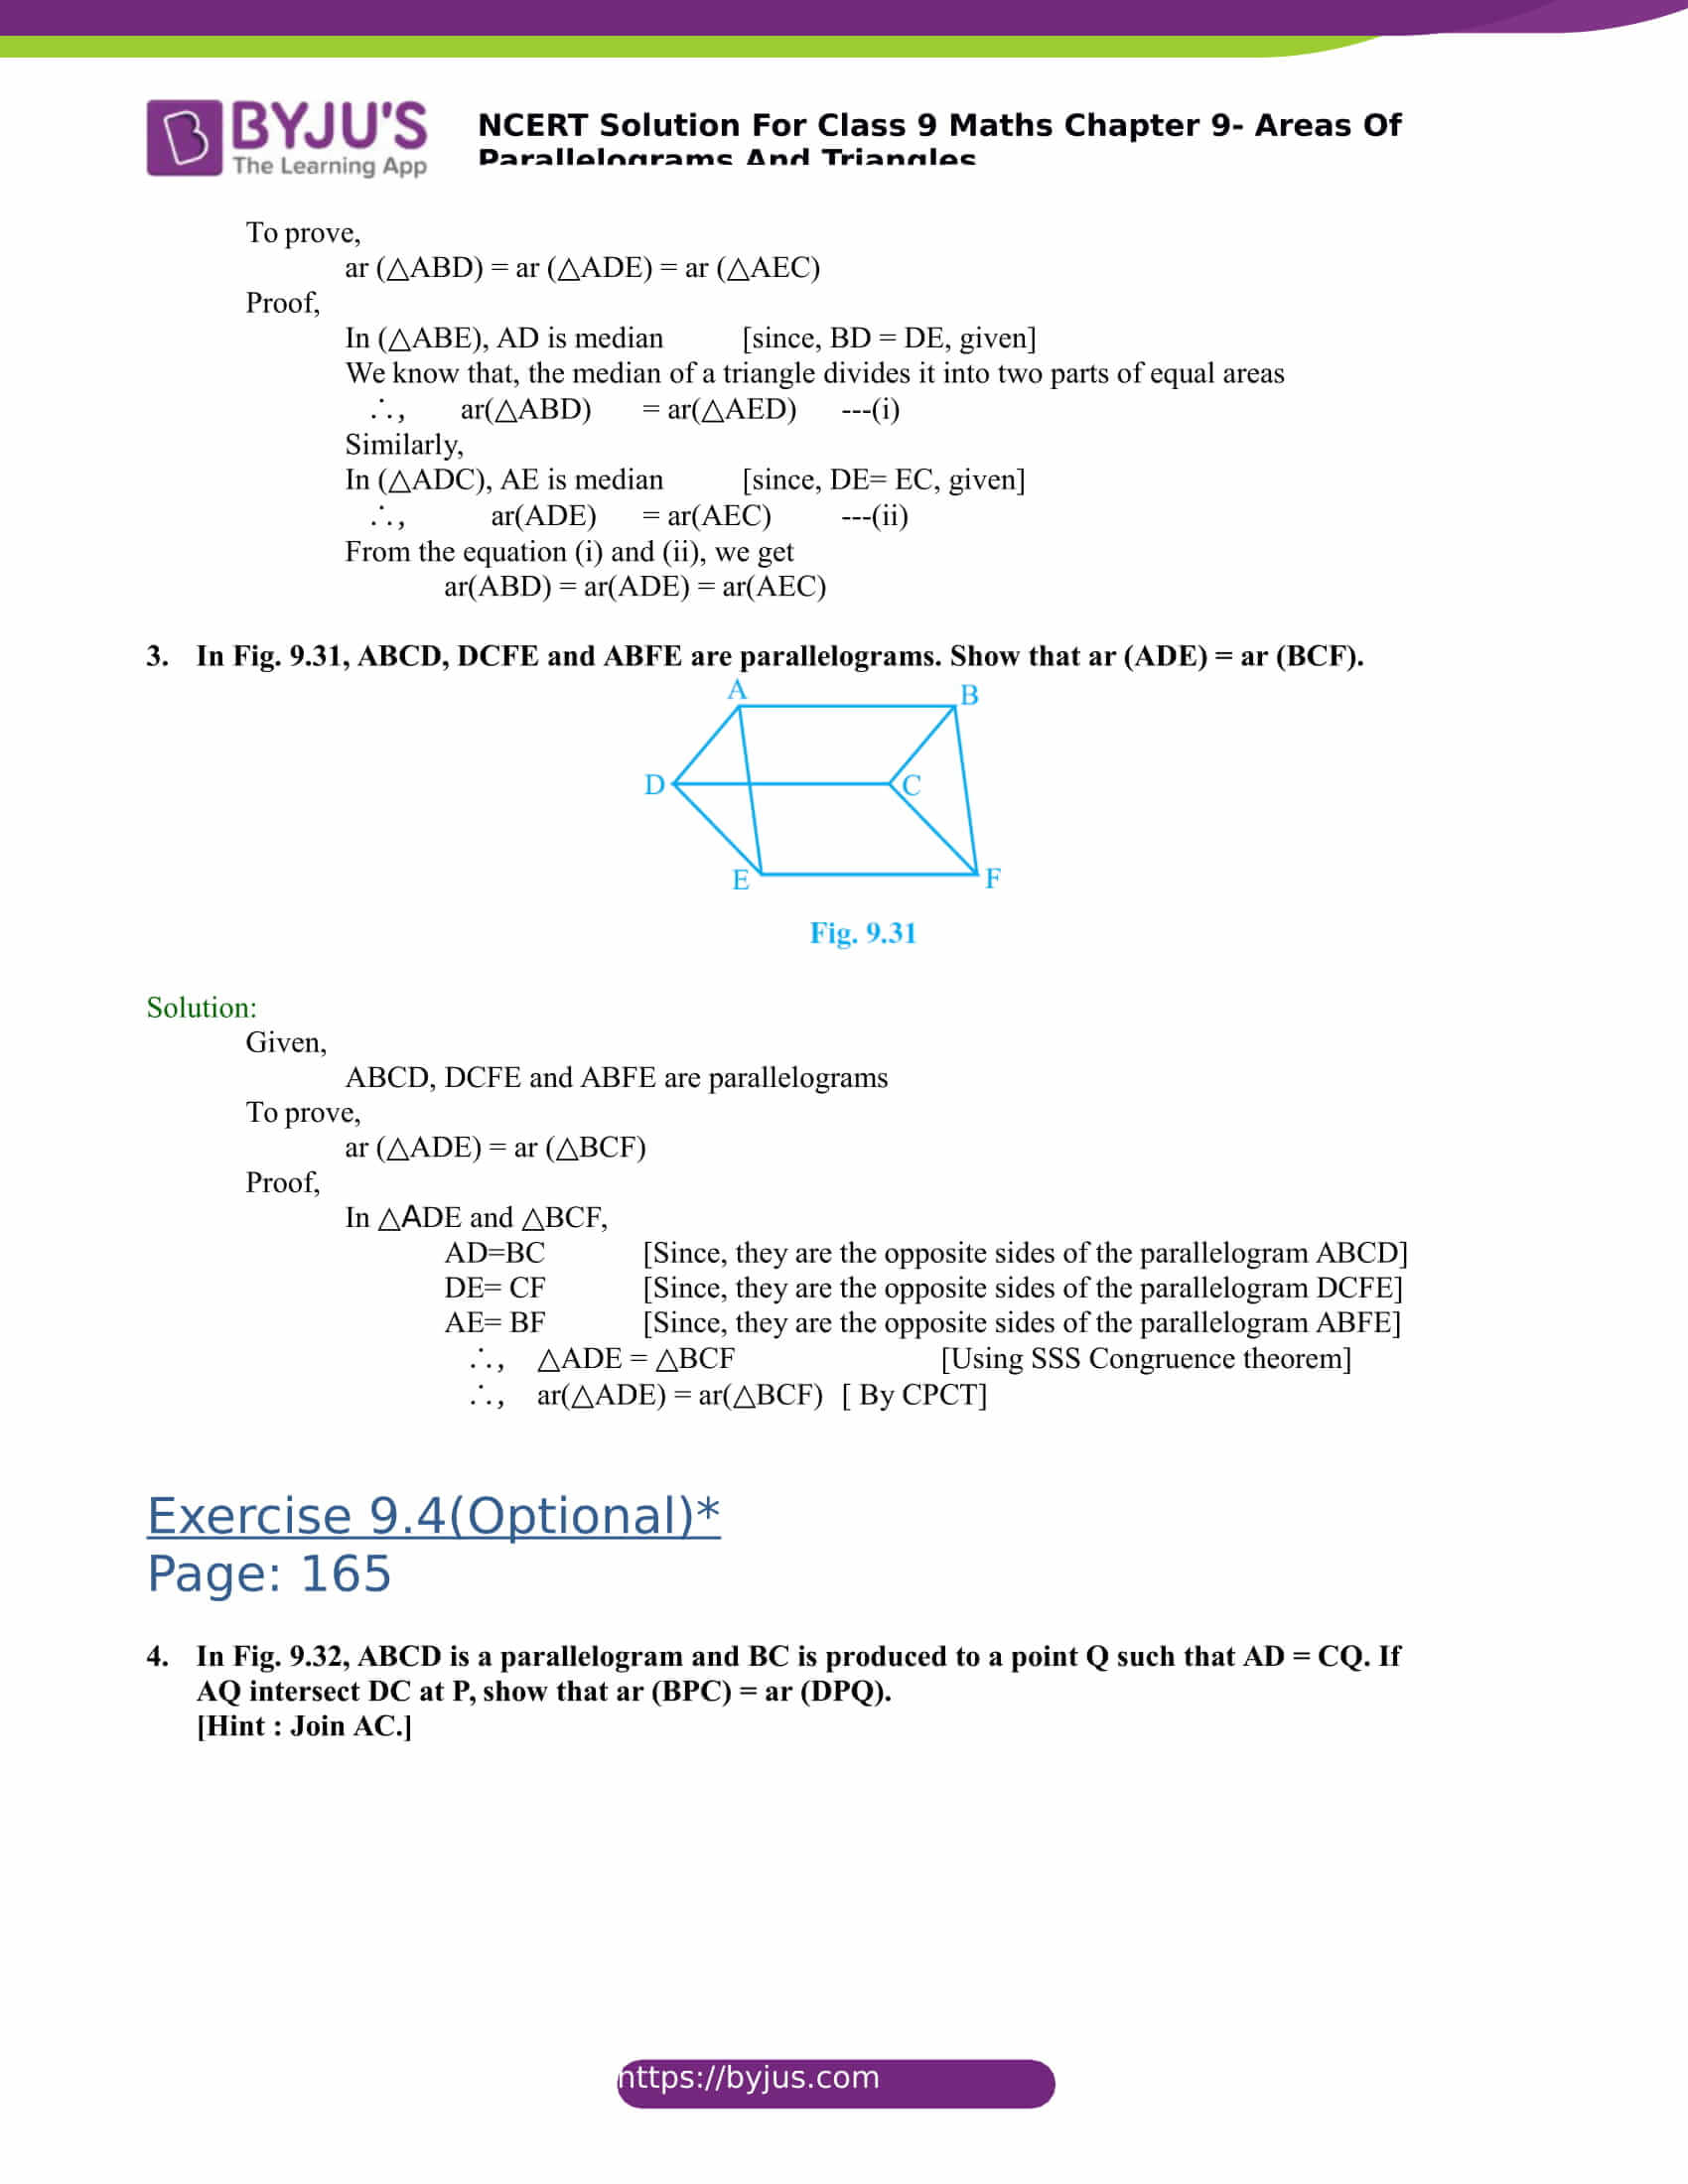 NCERT Solutions for class 9 Maths Chapter 9 Areas of parallelograms and triangles Part 21